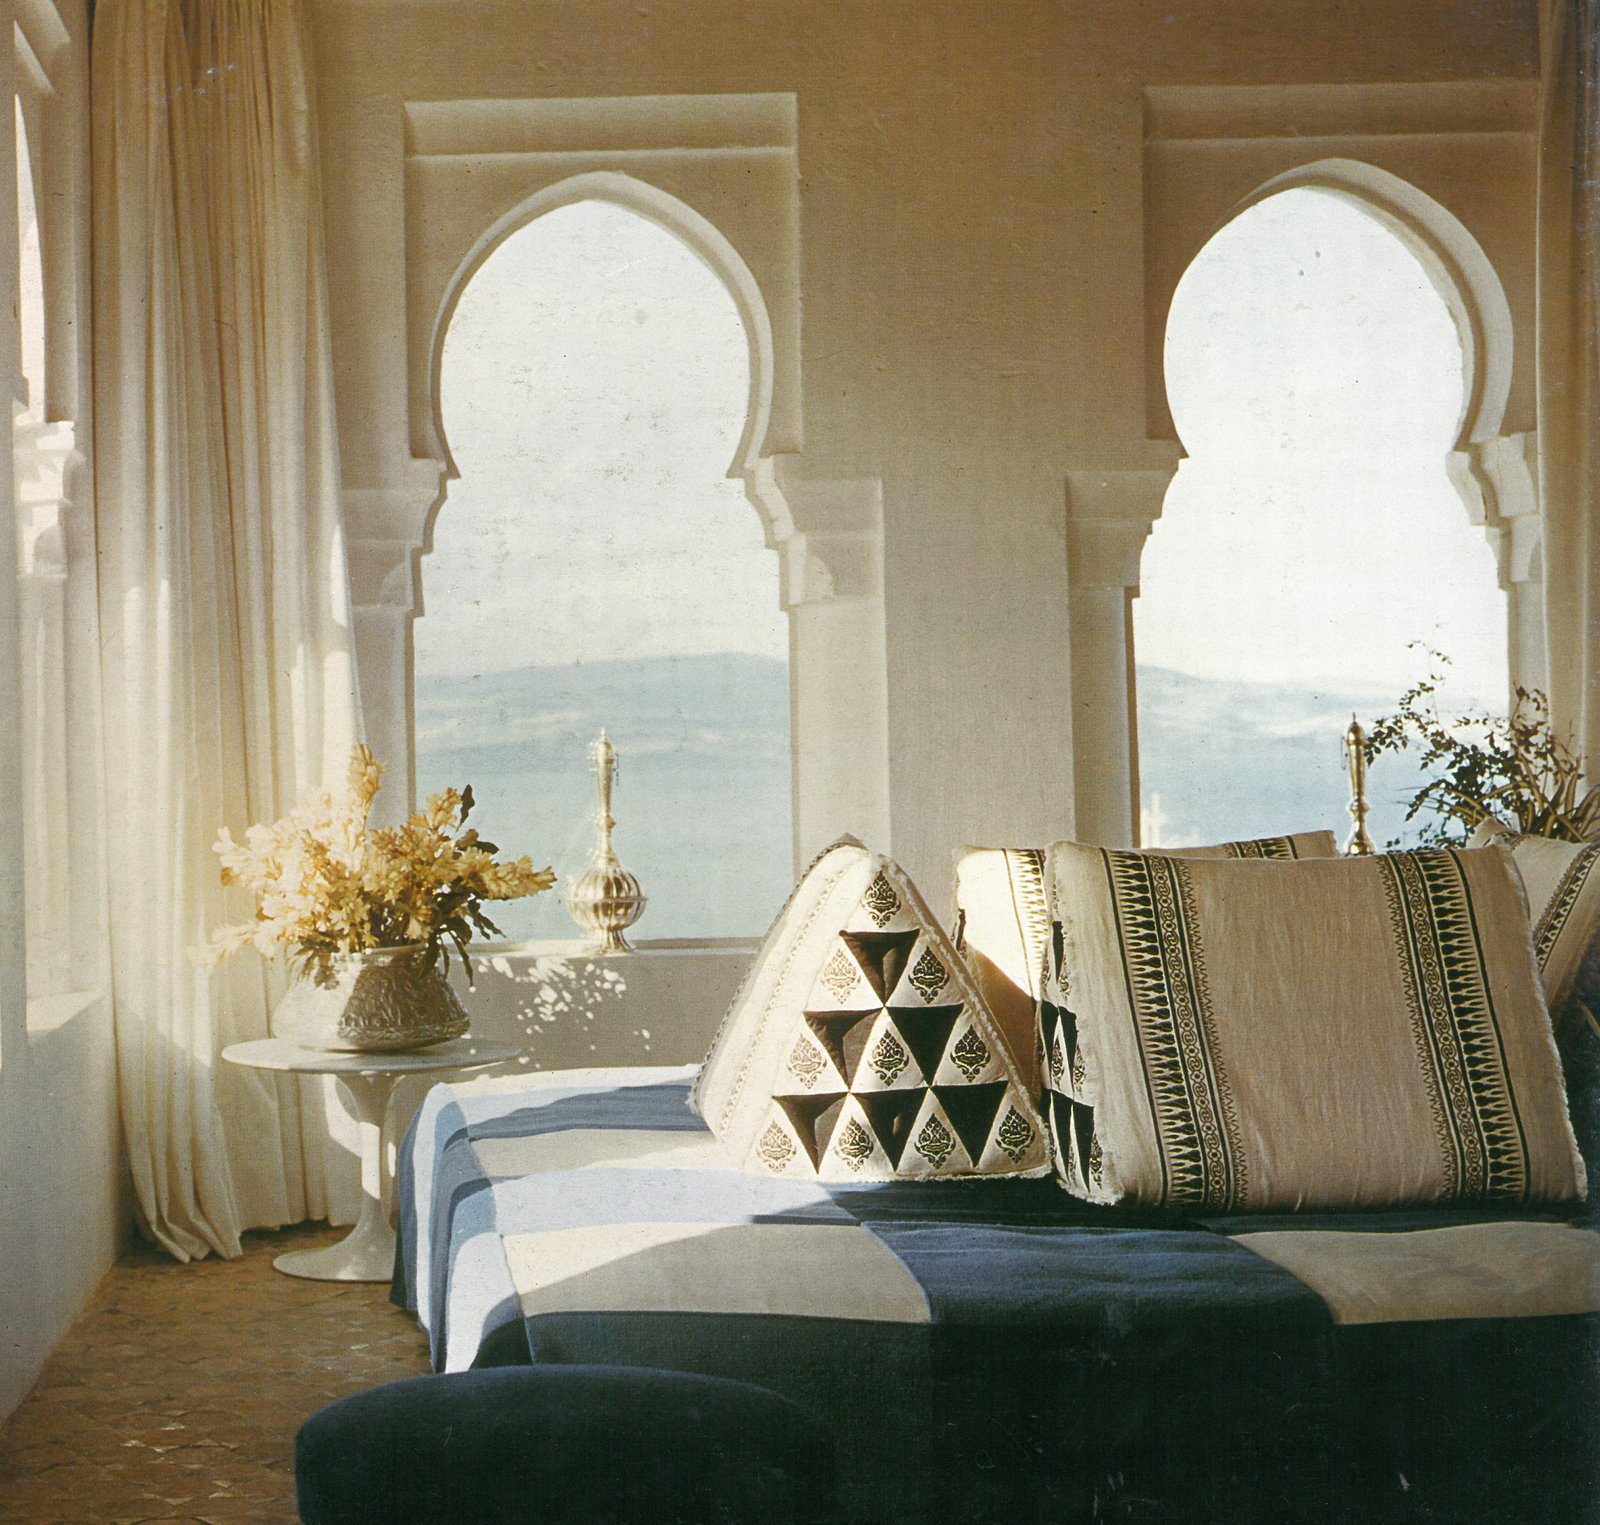 Yves Vidal's York Castle in Tangiers, Morocco. Photograph from the Knoll Archive.  Photo 8 of 9 in Yves Vidal: Knoll International